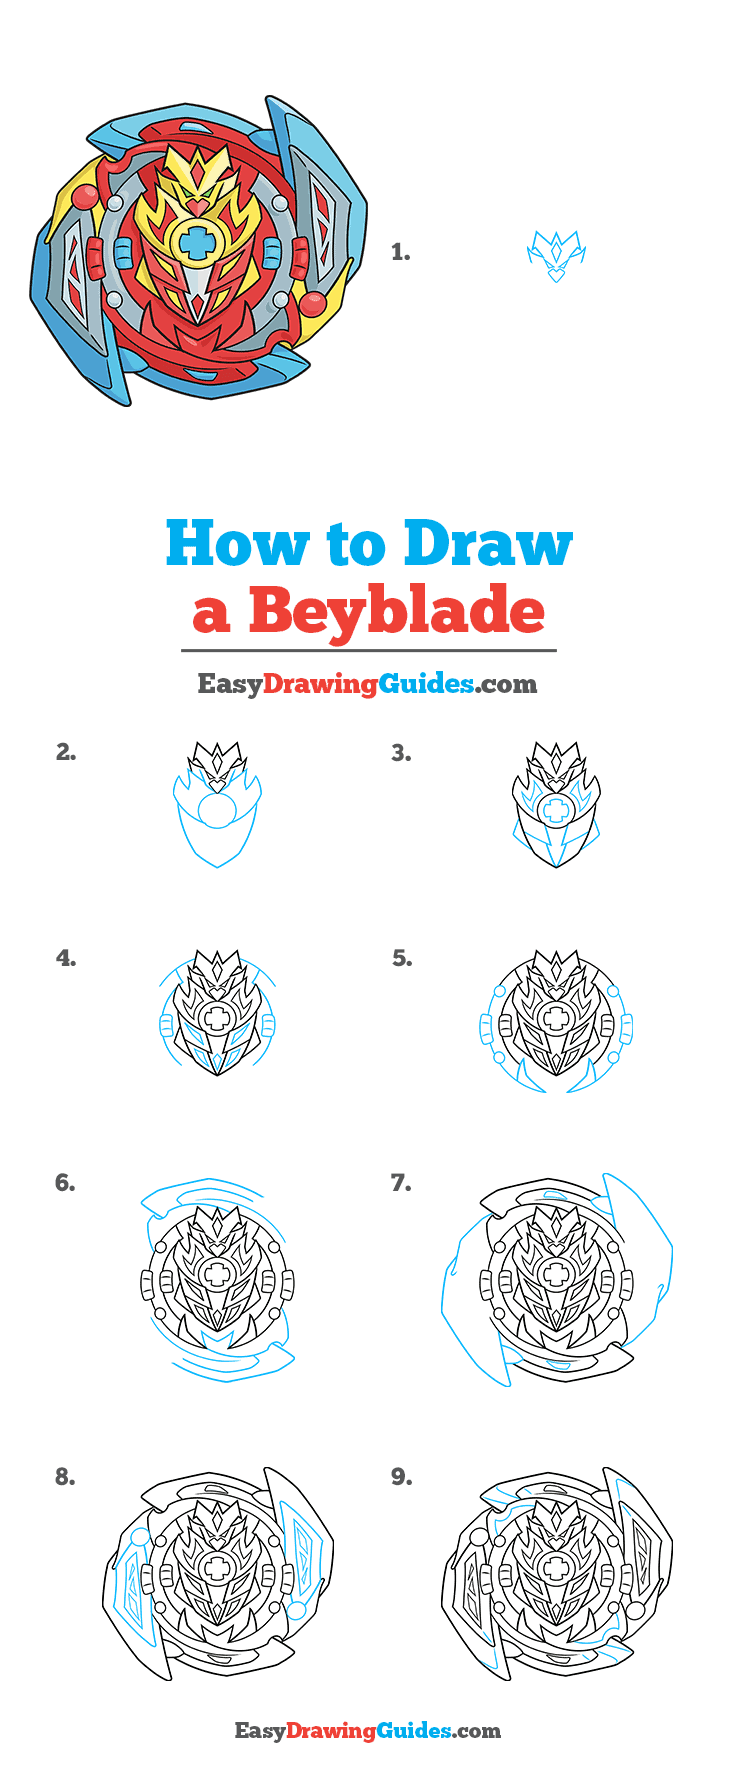 How to Draw a Beyblade Step by Step Tutorial Image